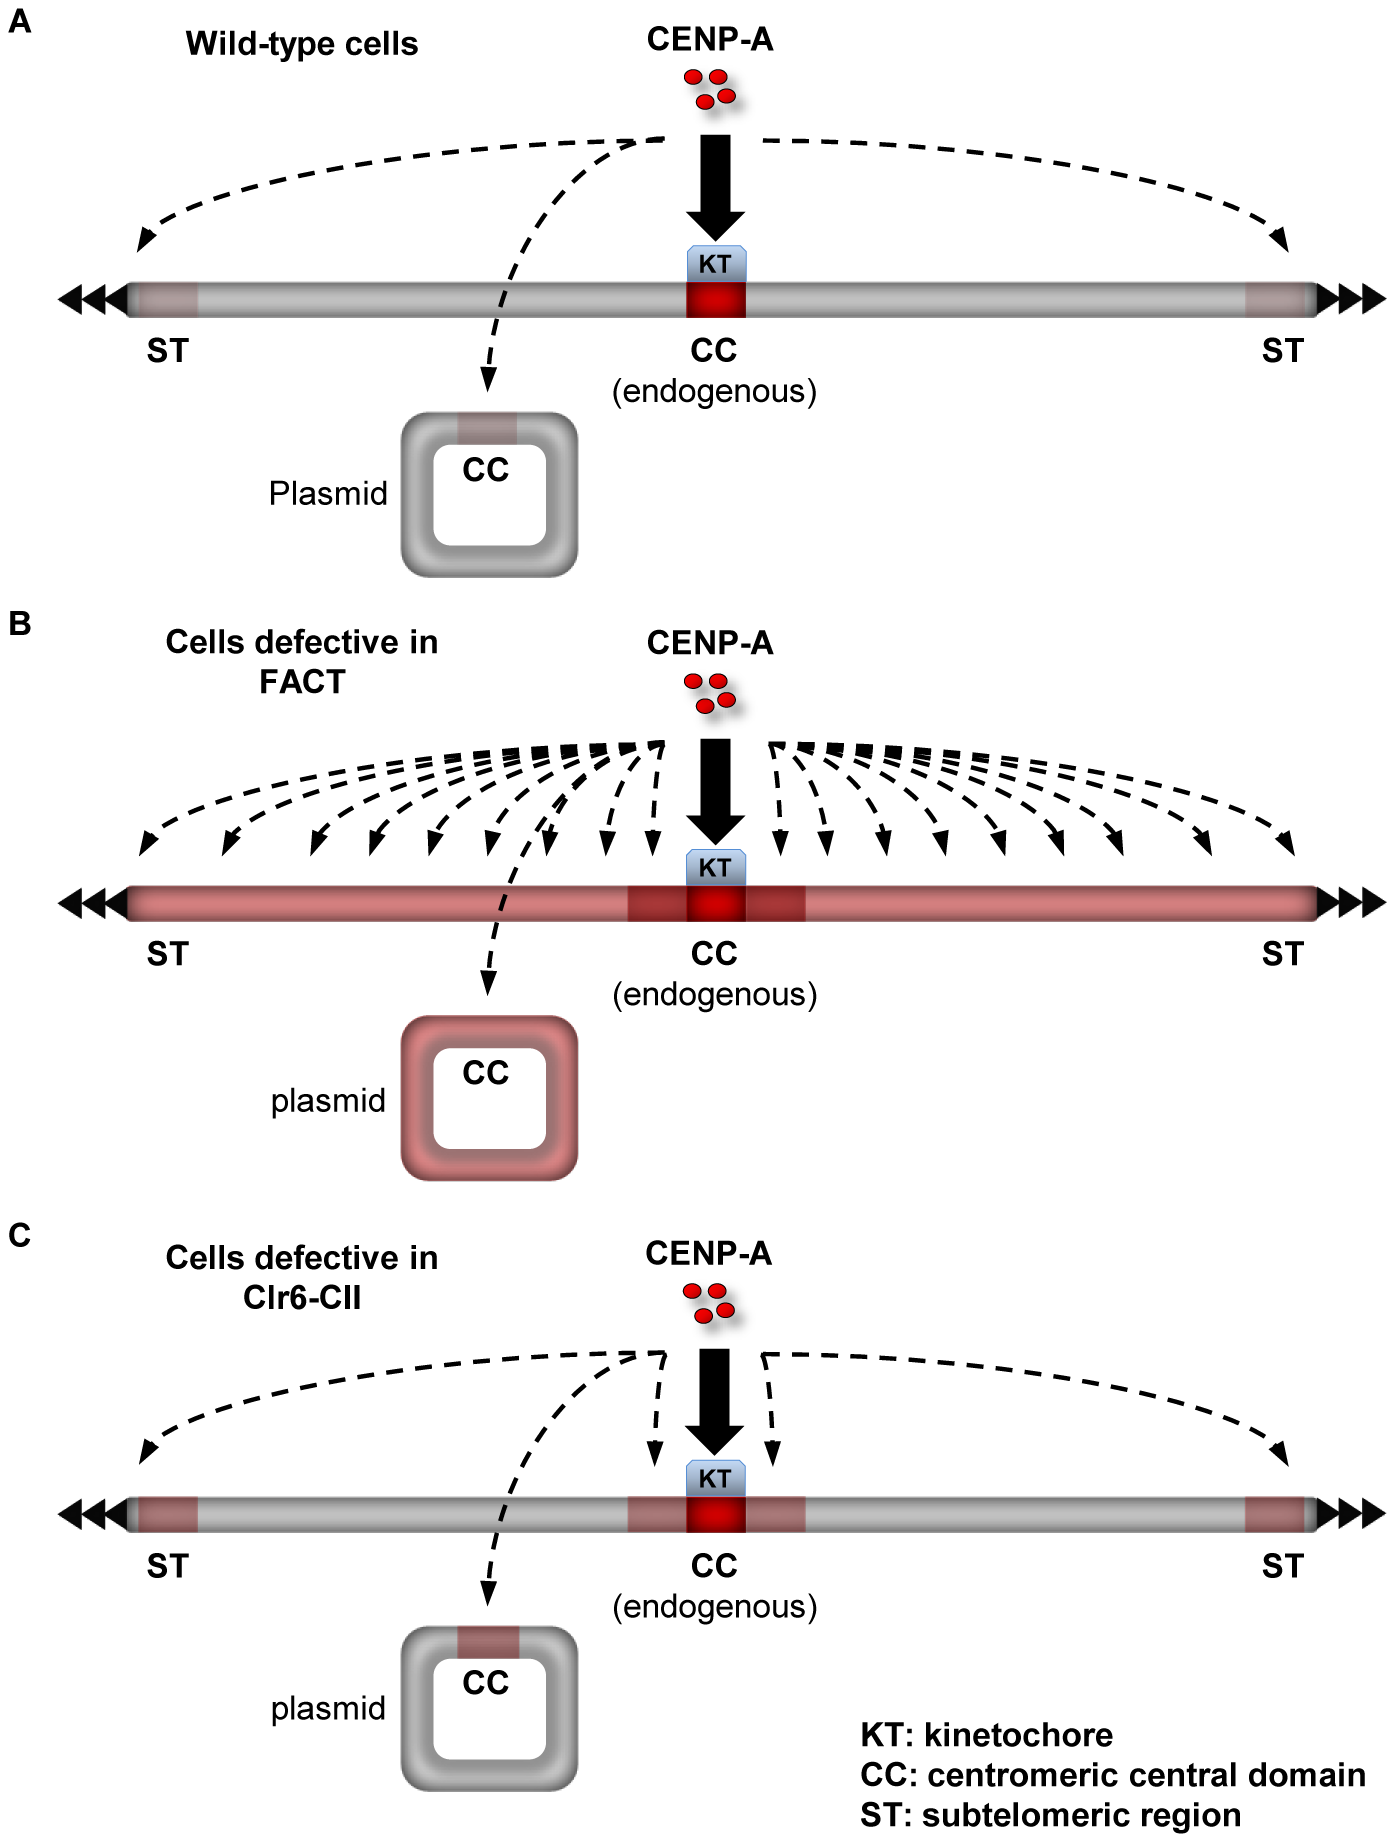 Summary on the role of factors that promote the integrity of H3 chromatin during transcription in preventing promiscuous CENP-A<sup>Cnp1</sup> deposition.